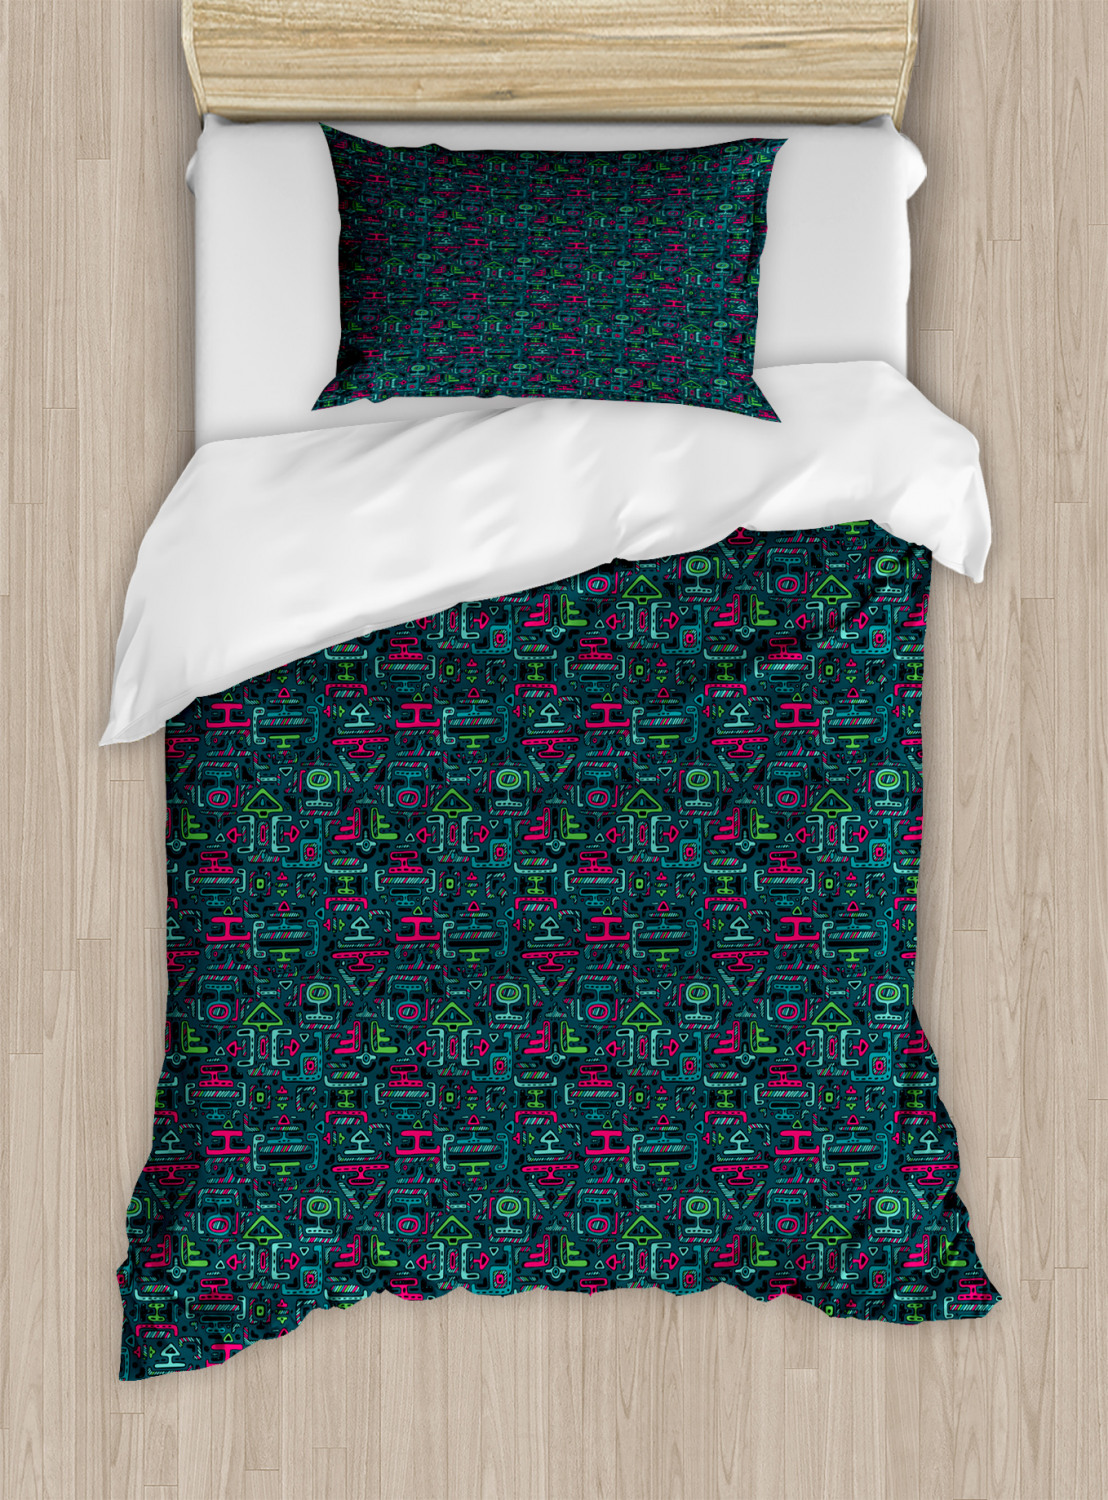 Timeless-Oriental-Duvet-Cover-Set-Twin-Queen-King-Sizes-with-Pillow-Shams thumbnail 91